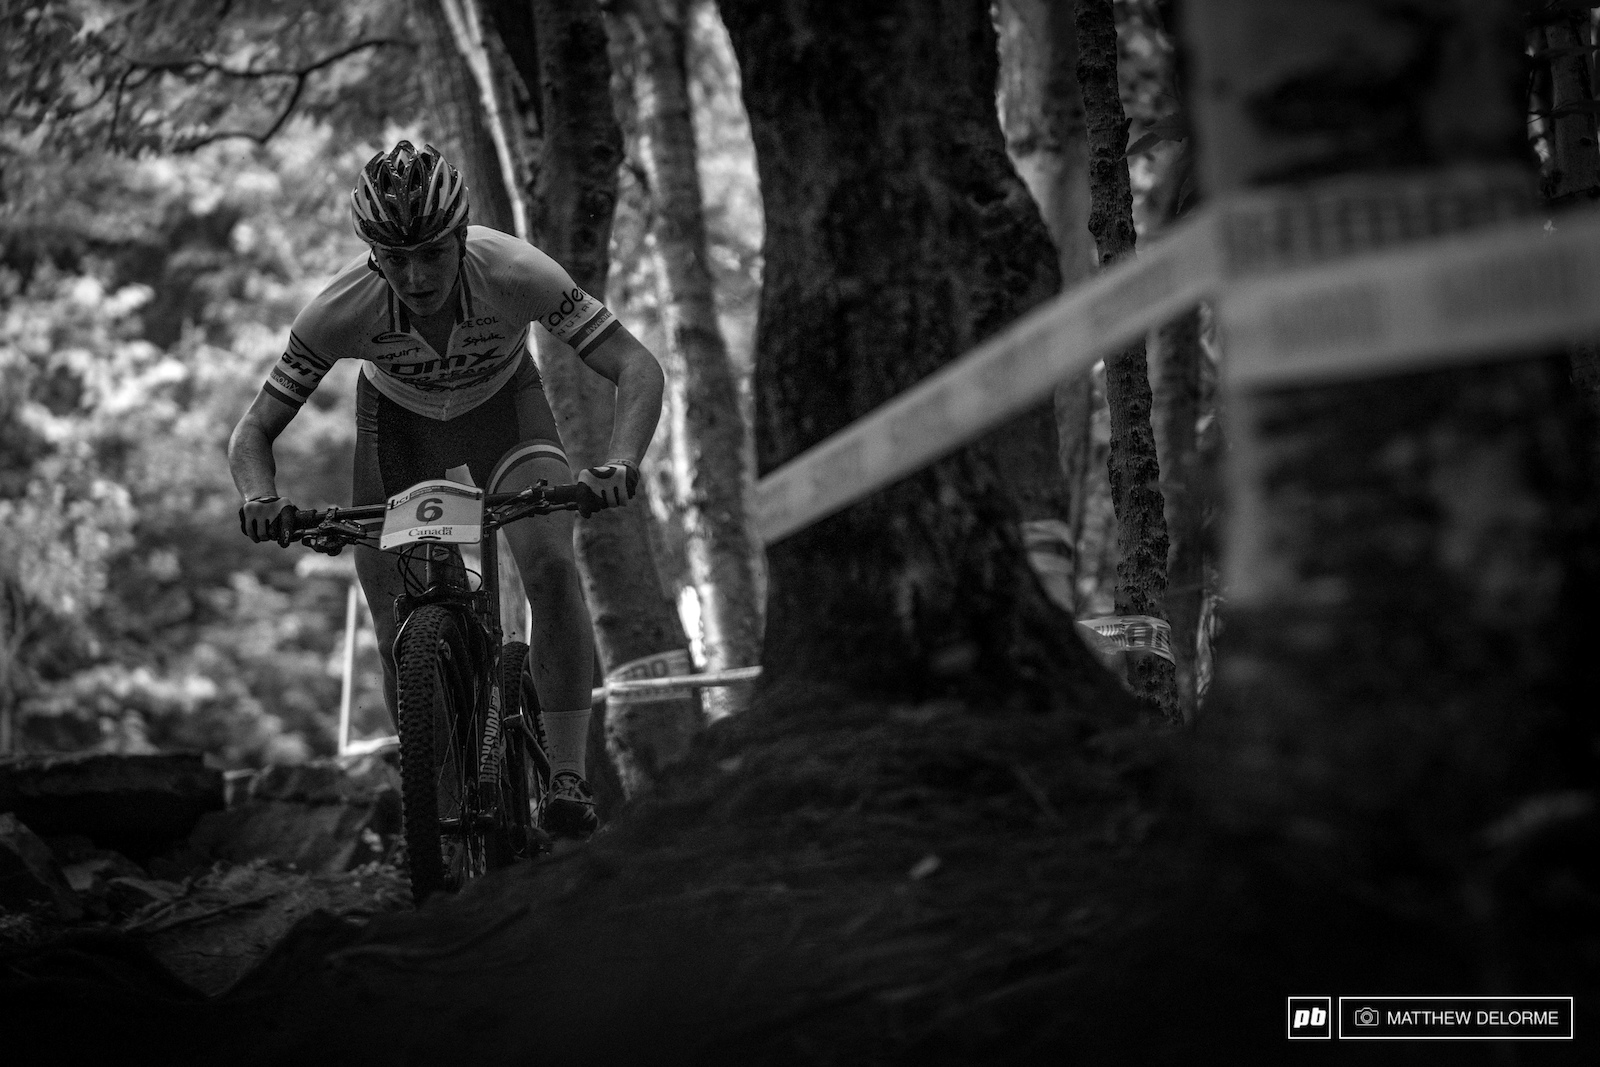 Annie Last looking aggressive as ever after her win in Lenzerheide. She s on the short list here in MSA especially if the rain continues.